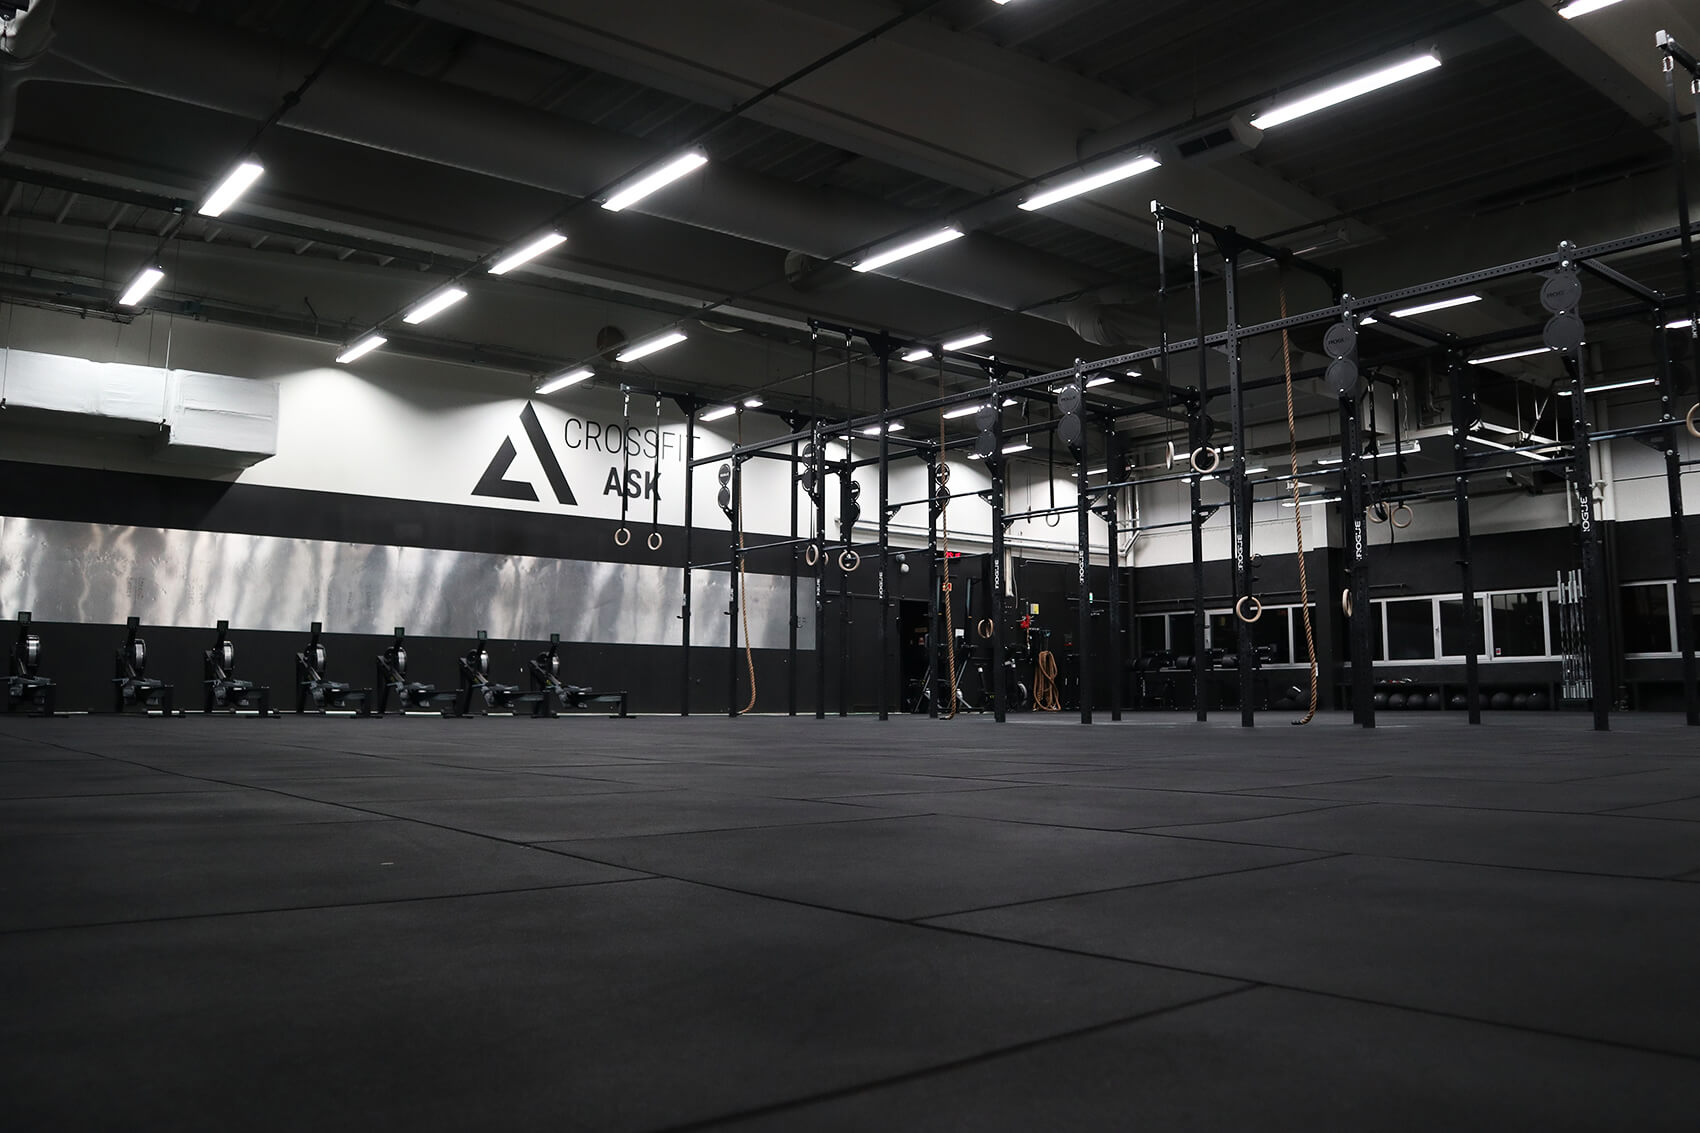 home-header-crossfit-ask-stavanger